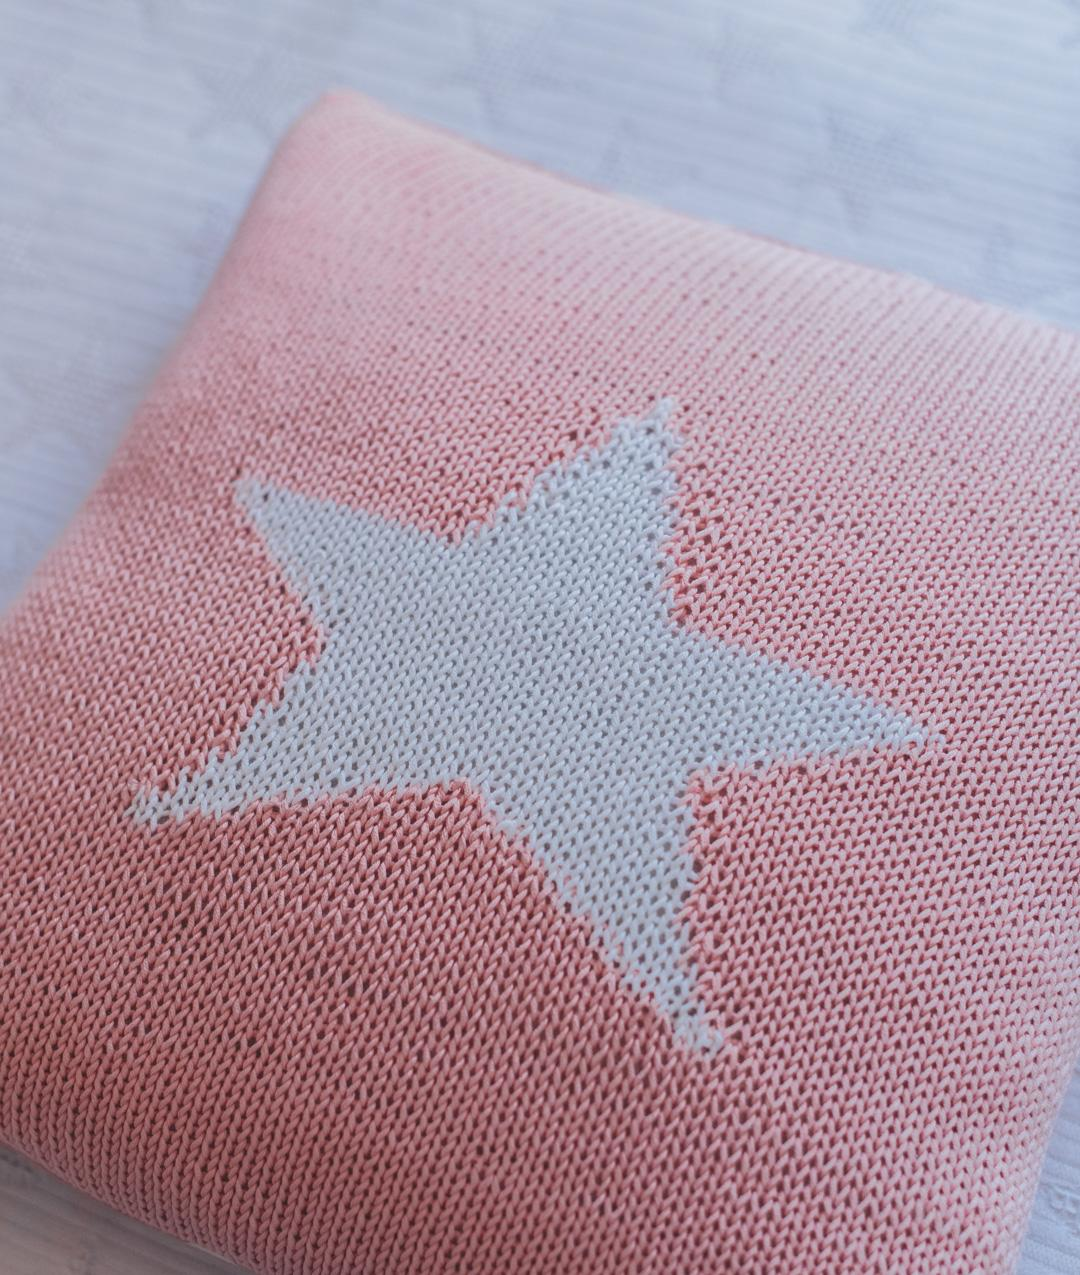 Collezione Kids Home Decor - CasaCollezione Kids Home Decor - Casa - MY LITTLE STAR CUSHION - 1